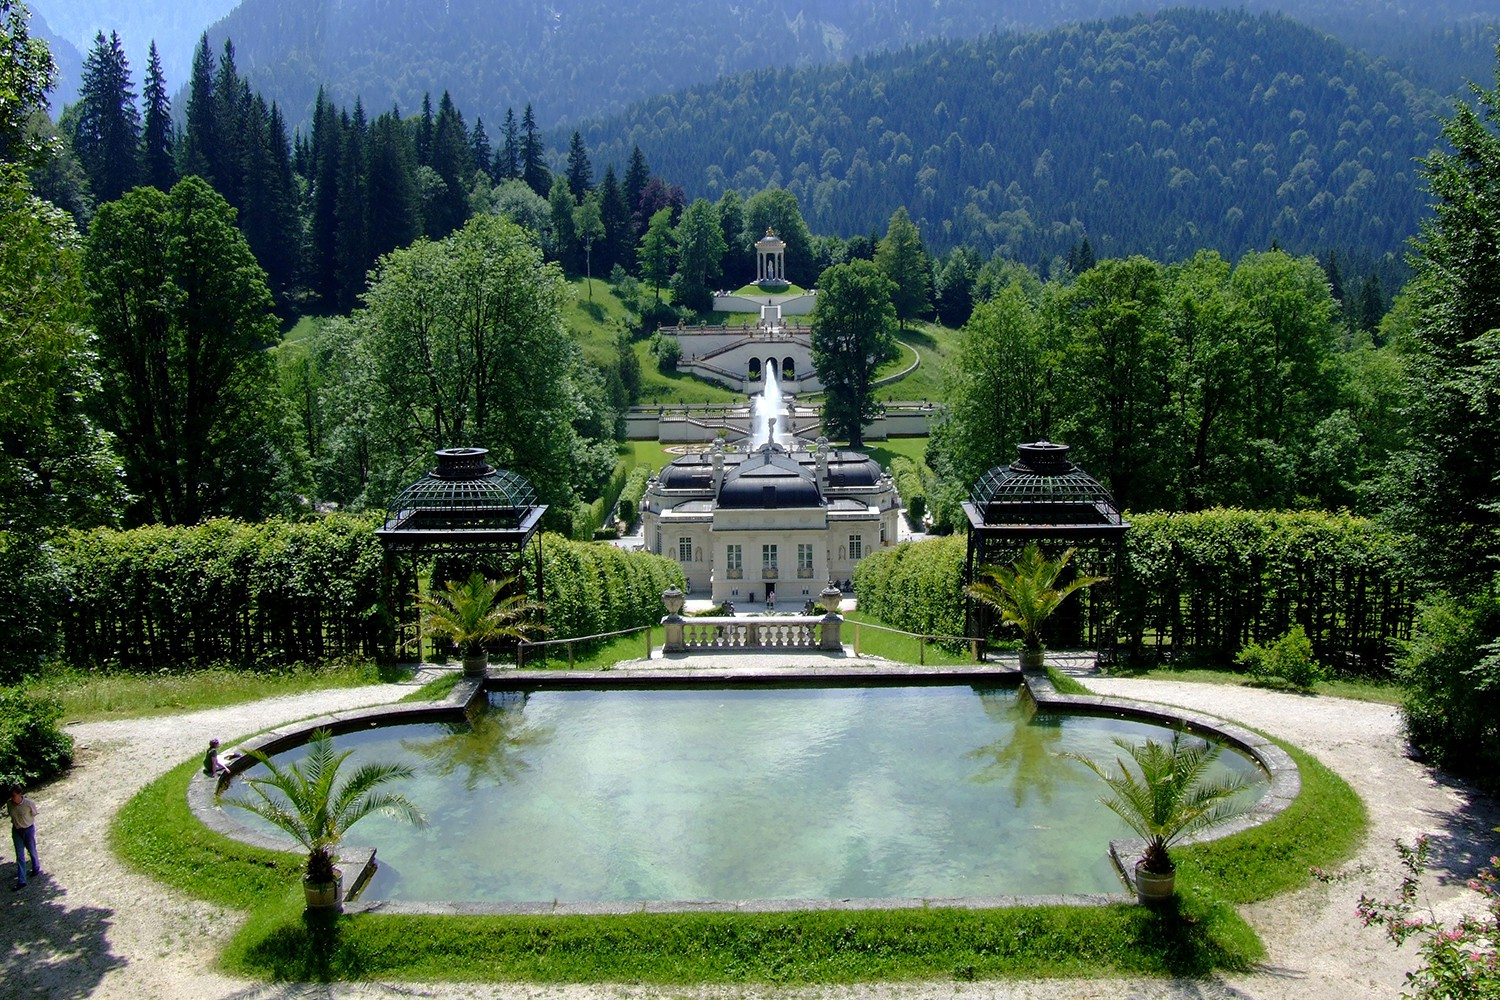 3 royal days in the Schlosshotel Linderhof